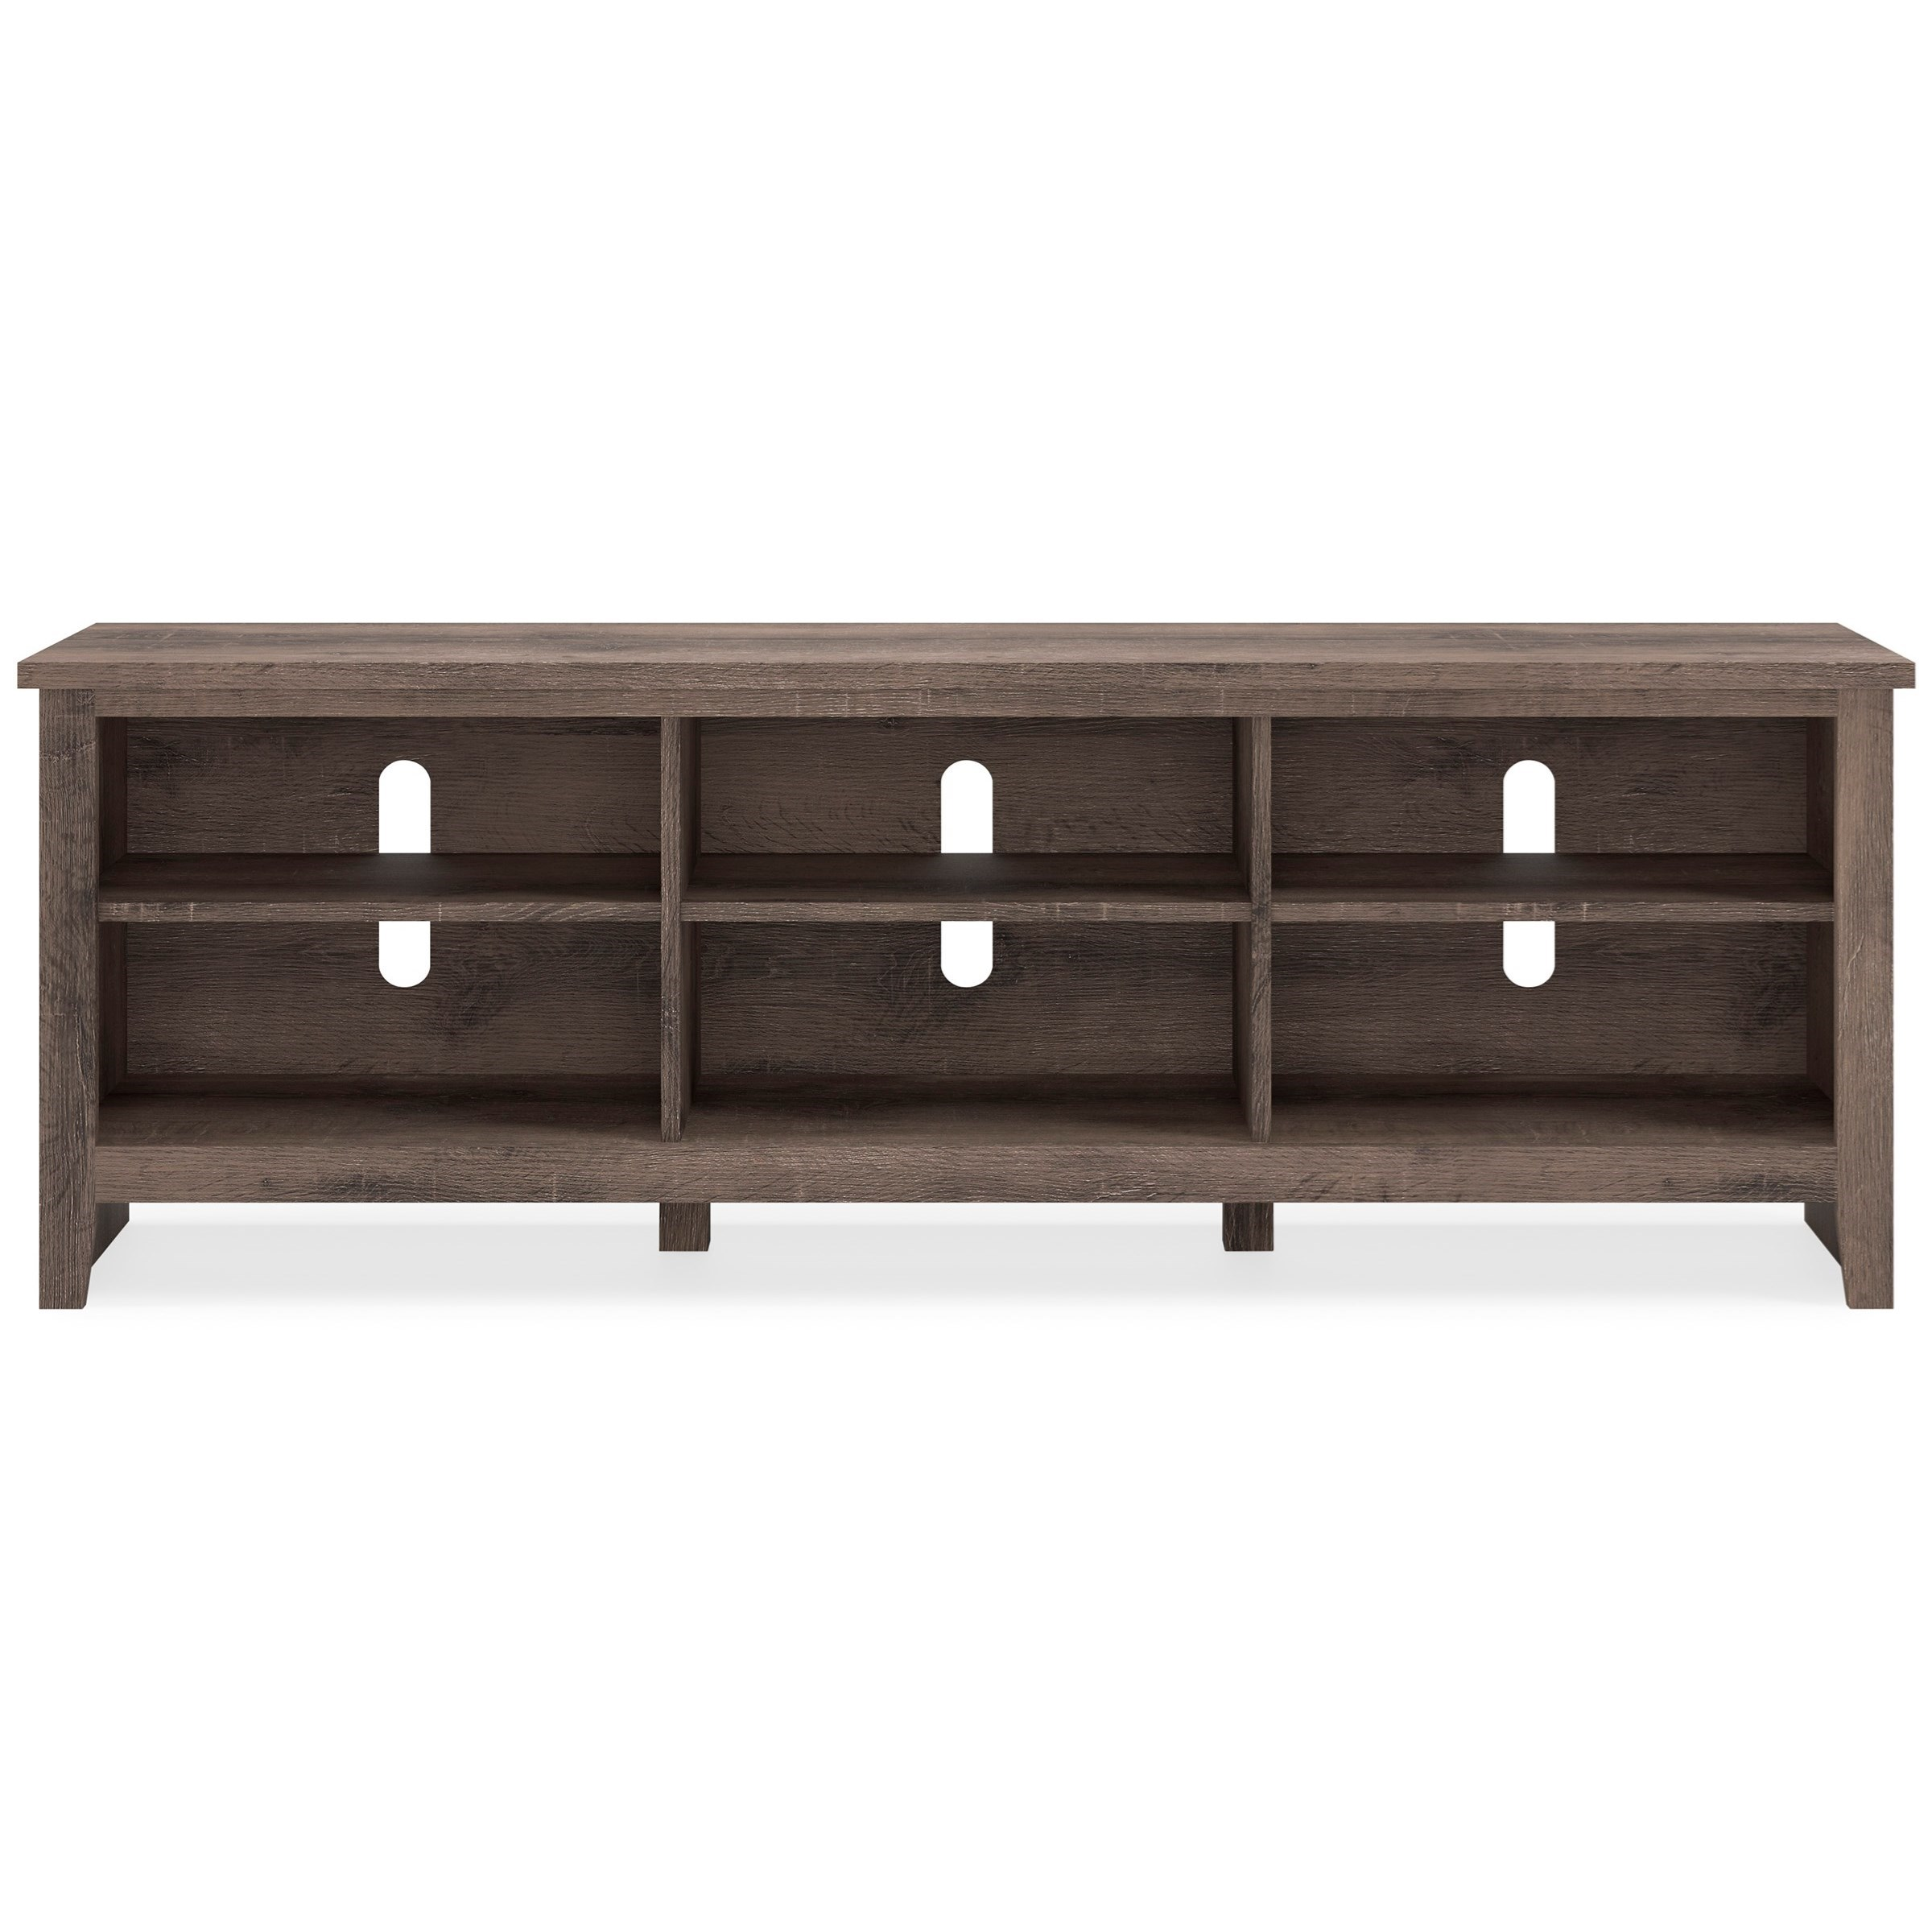 """Arlenbry 70"""" TV Stand by Signature Design by Ashley at Zak's Home Outlet"""